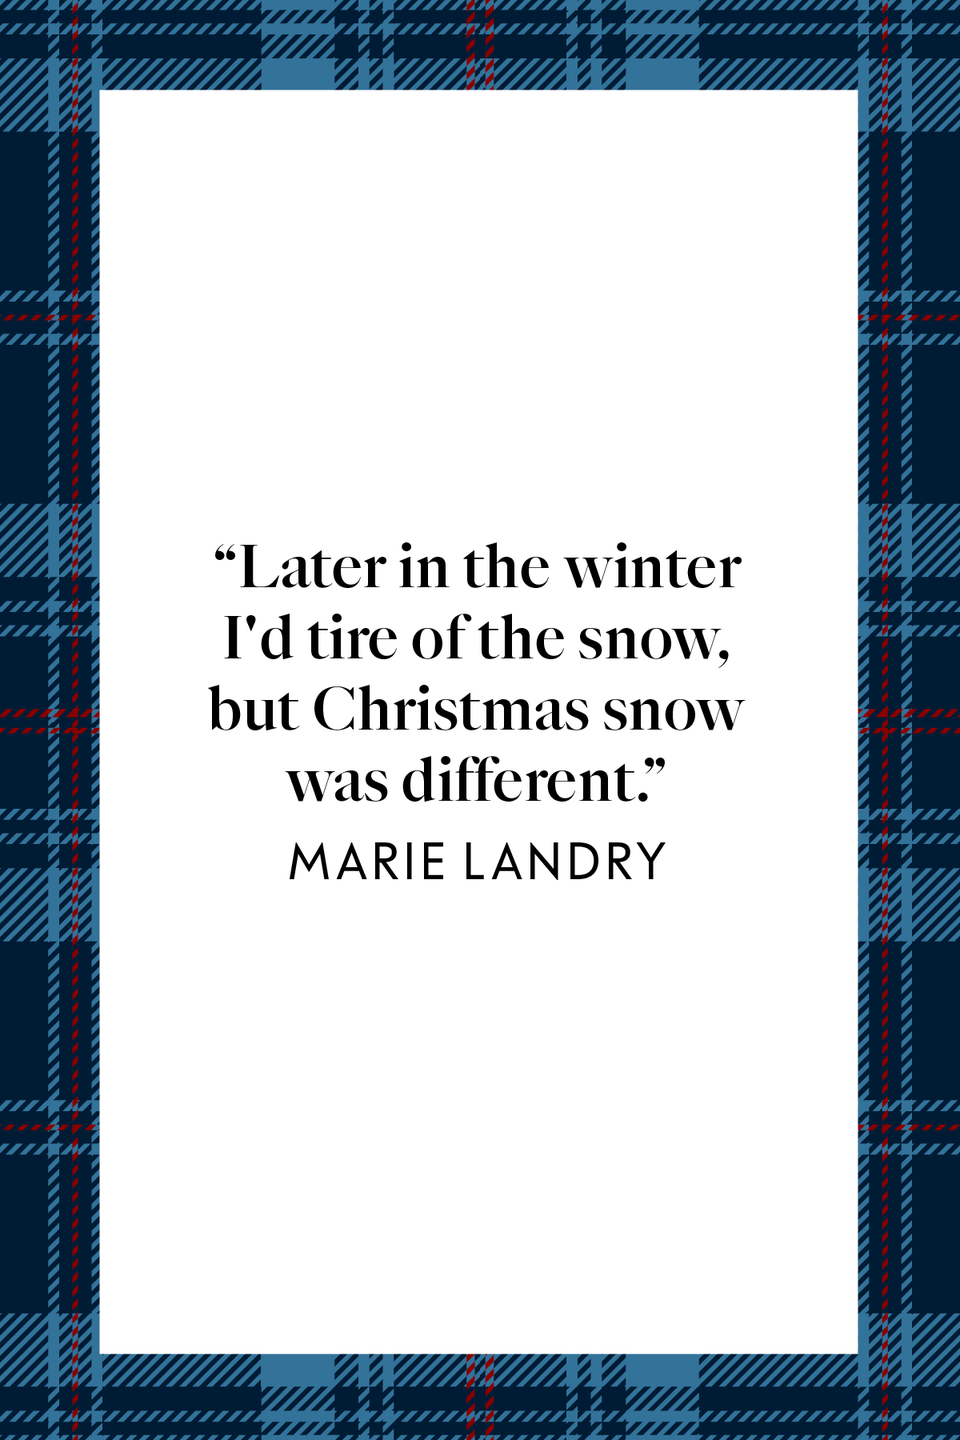 "<p>""Later in the winter I'd tire of the snow, but Christmas snow was different,"" author Marie Landry wrote in her novel <em><a href=""https://www.amazon.com/Most-Wonderful-Time-Year-ebook/dp/B00GDF7ZBS?tag=syn-yahoo-20&ascsubtag=%5Bartid%7C10072.g.34536312%5Bsrc%7Cyahoo-us"" rel=""nofollow noopener"" target=""_blank"" data-ylk=""slk:The Most Wonderful Time of the Year"" class=""link rapid-noclick-resp"">The Most Wonderful Time of the Year</a>, </em>which centers around a woman finding the Christmas spirit again.</p>"